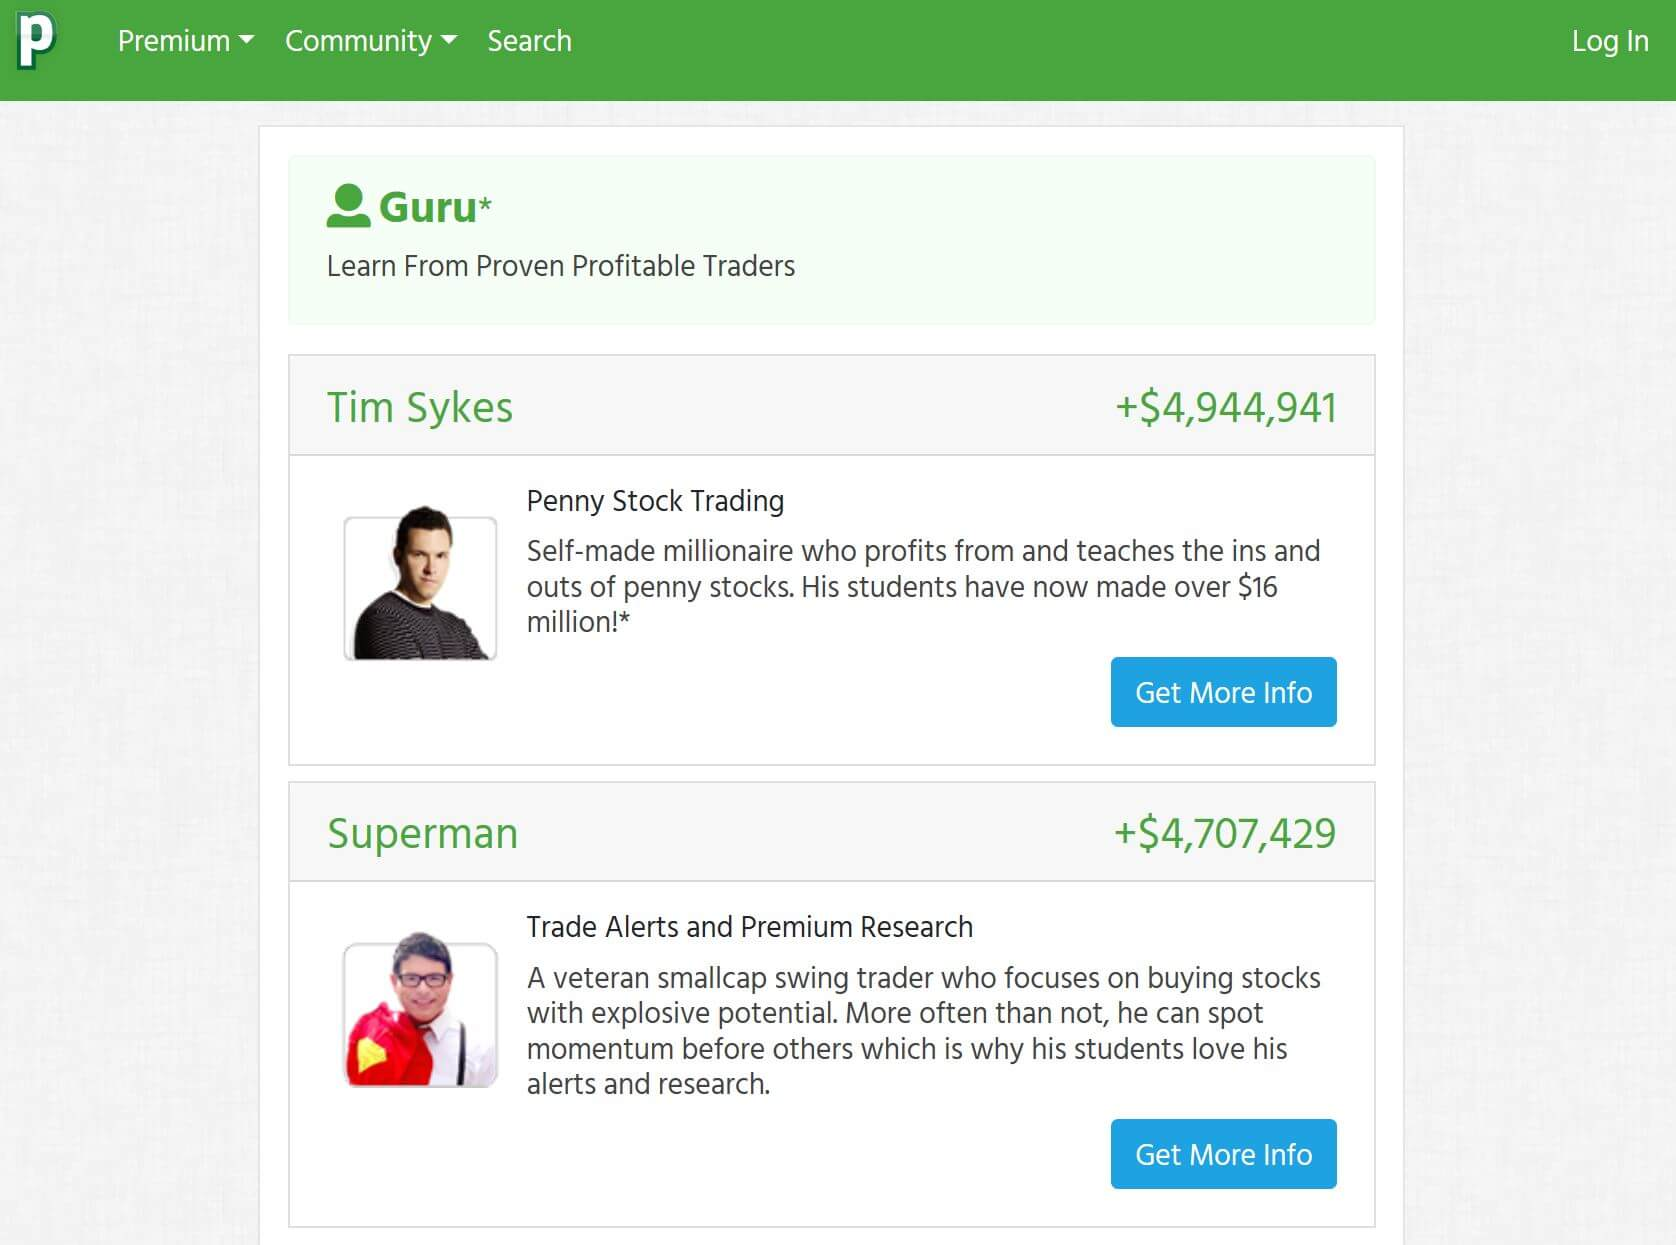 profitly teachers: Tim Sykes and Superman